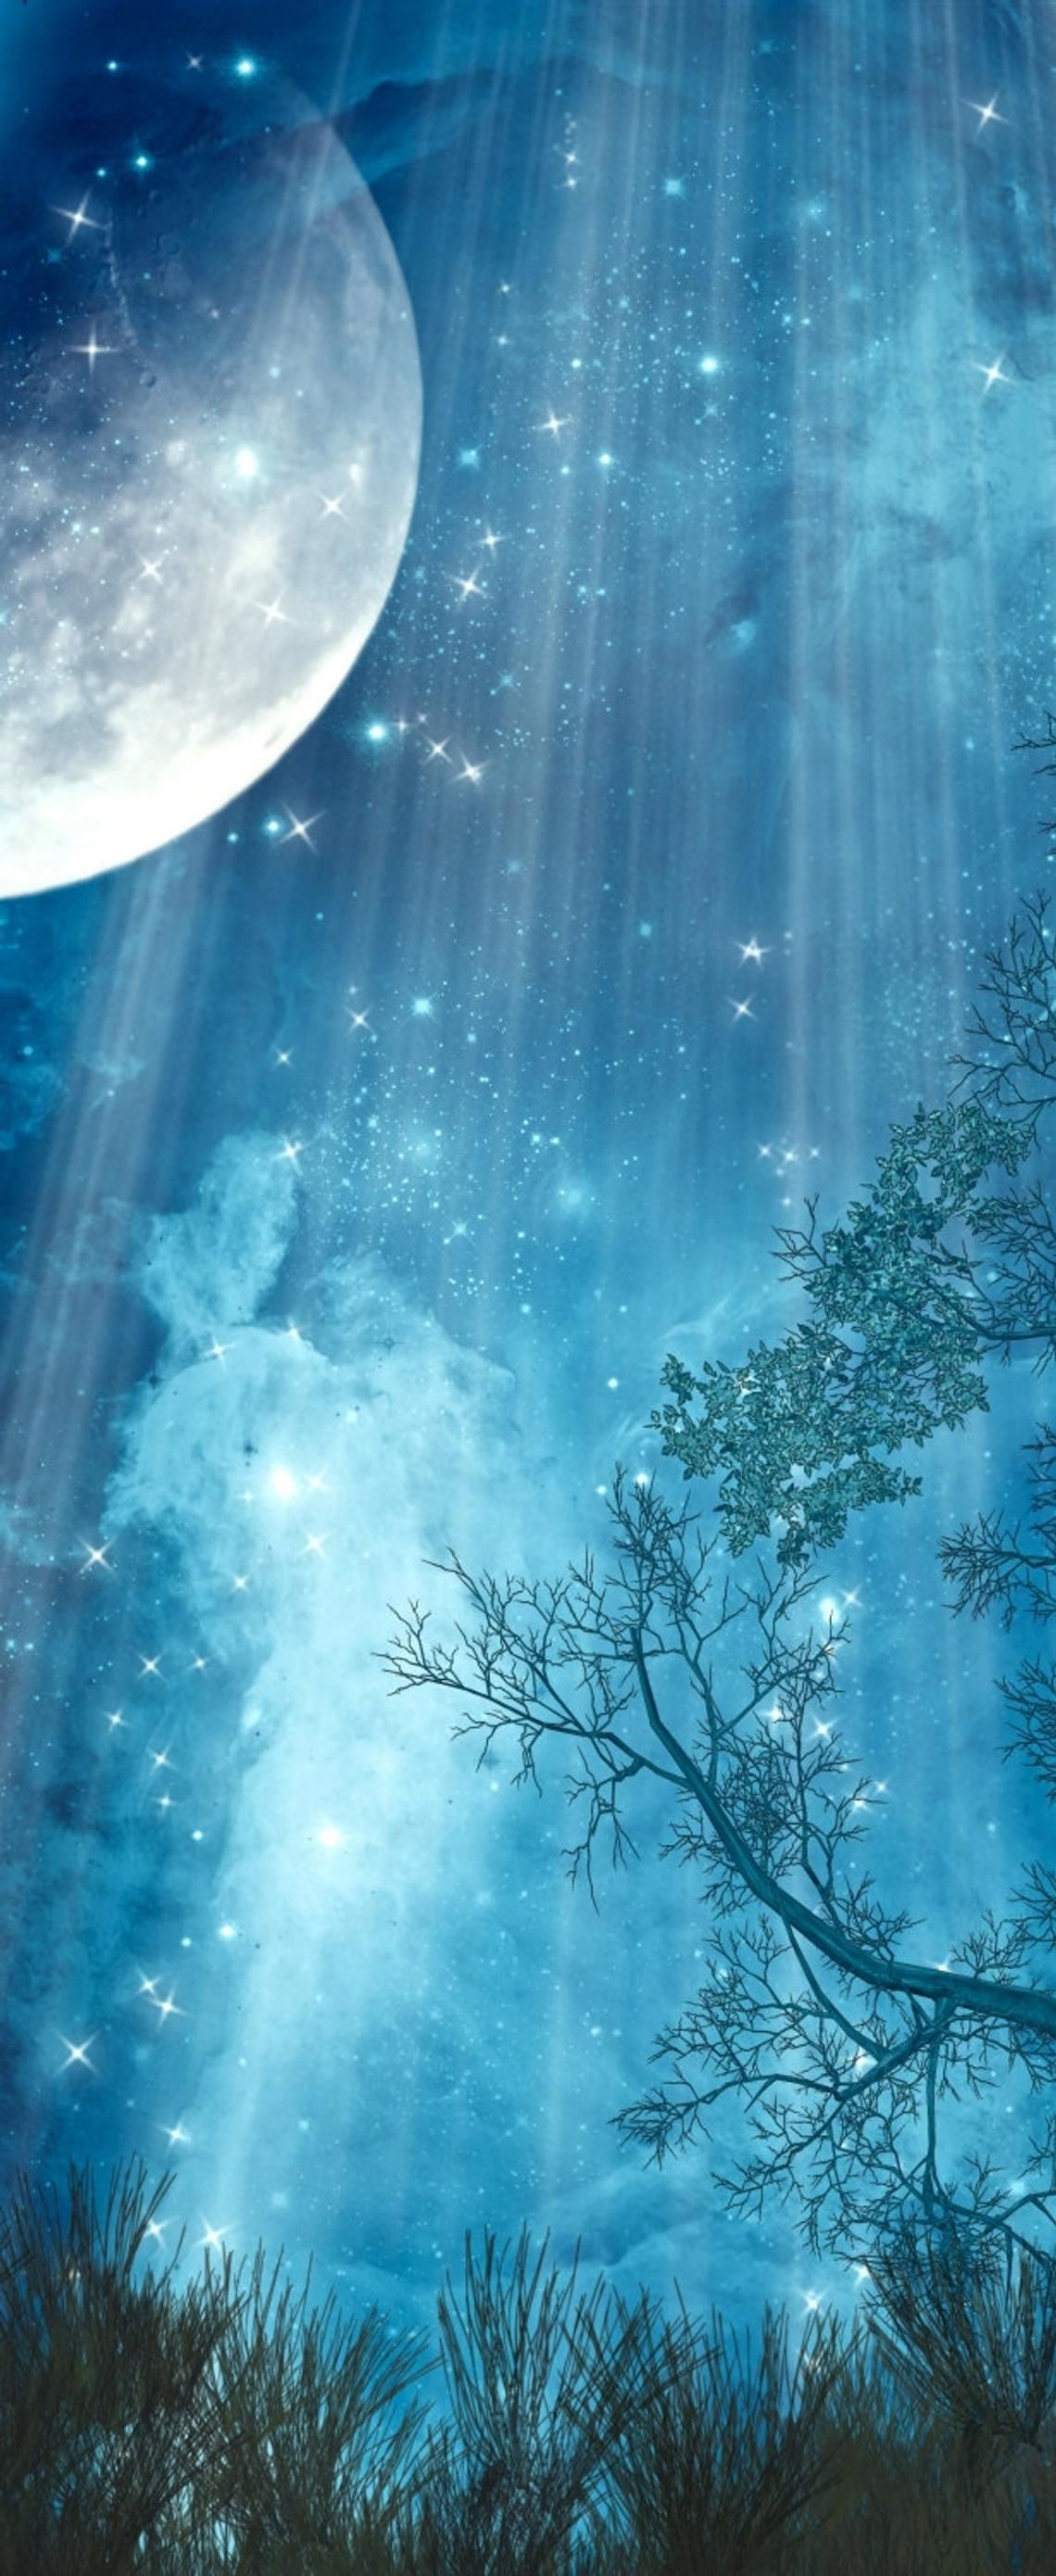 Star Fall in 2020 Autumn painting, Fantasy landscape